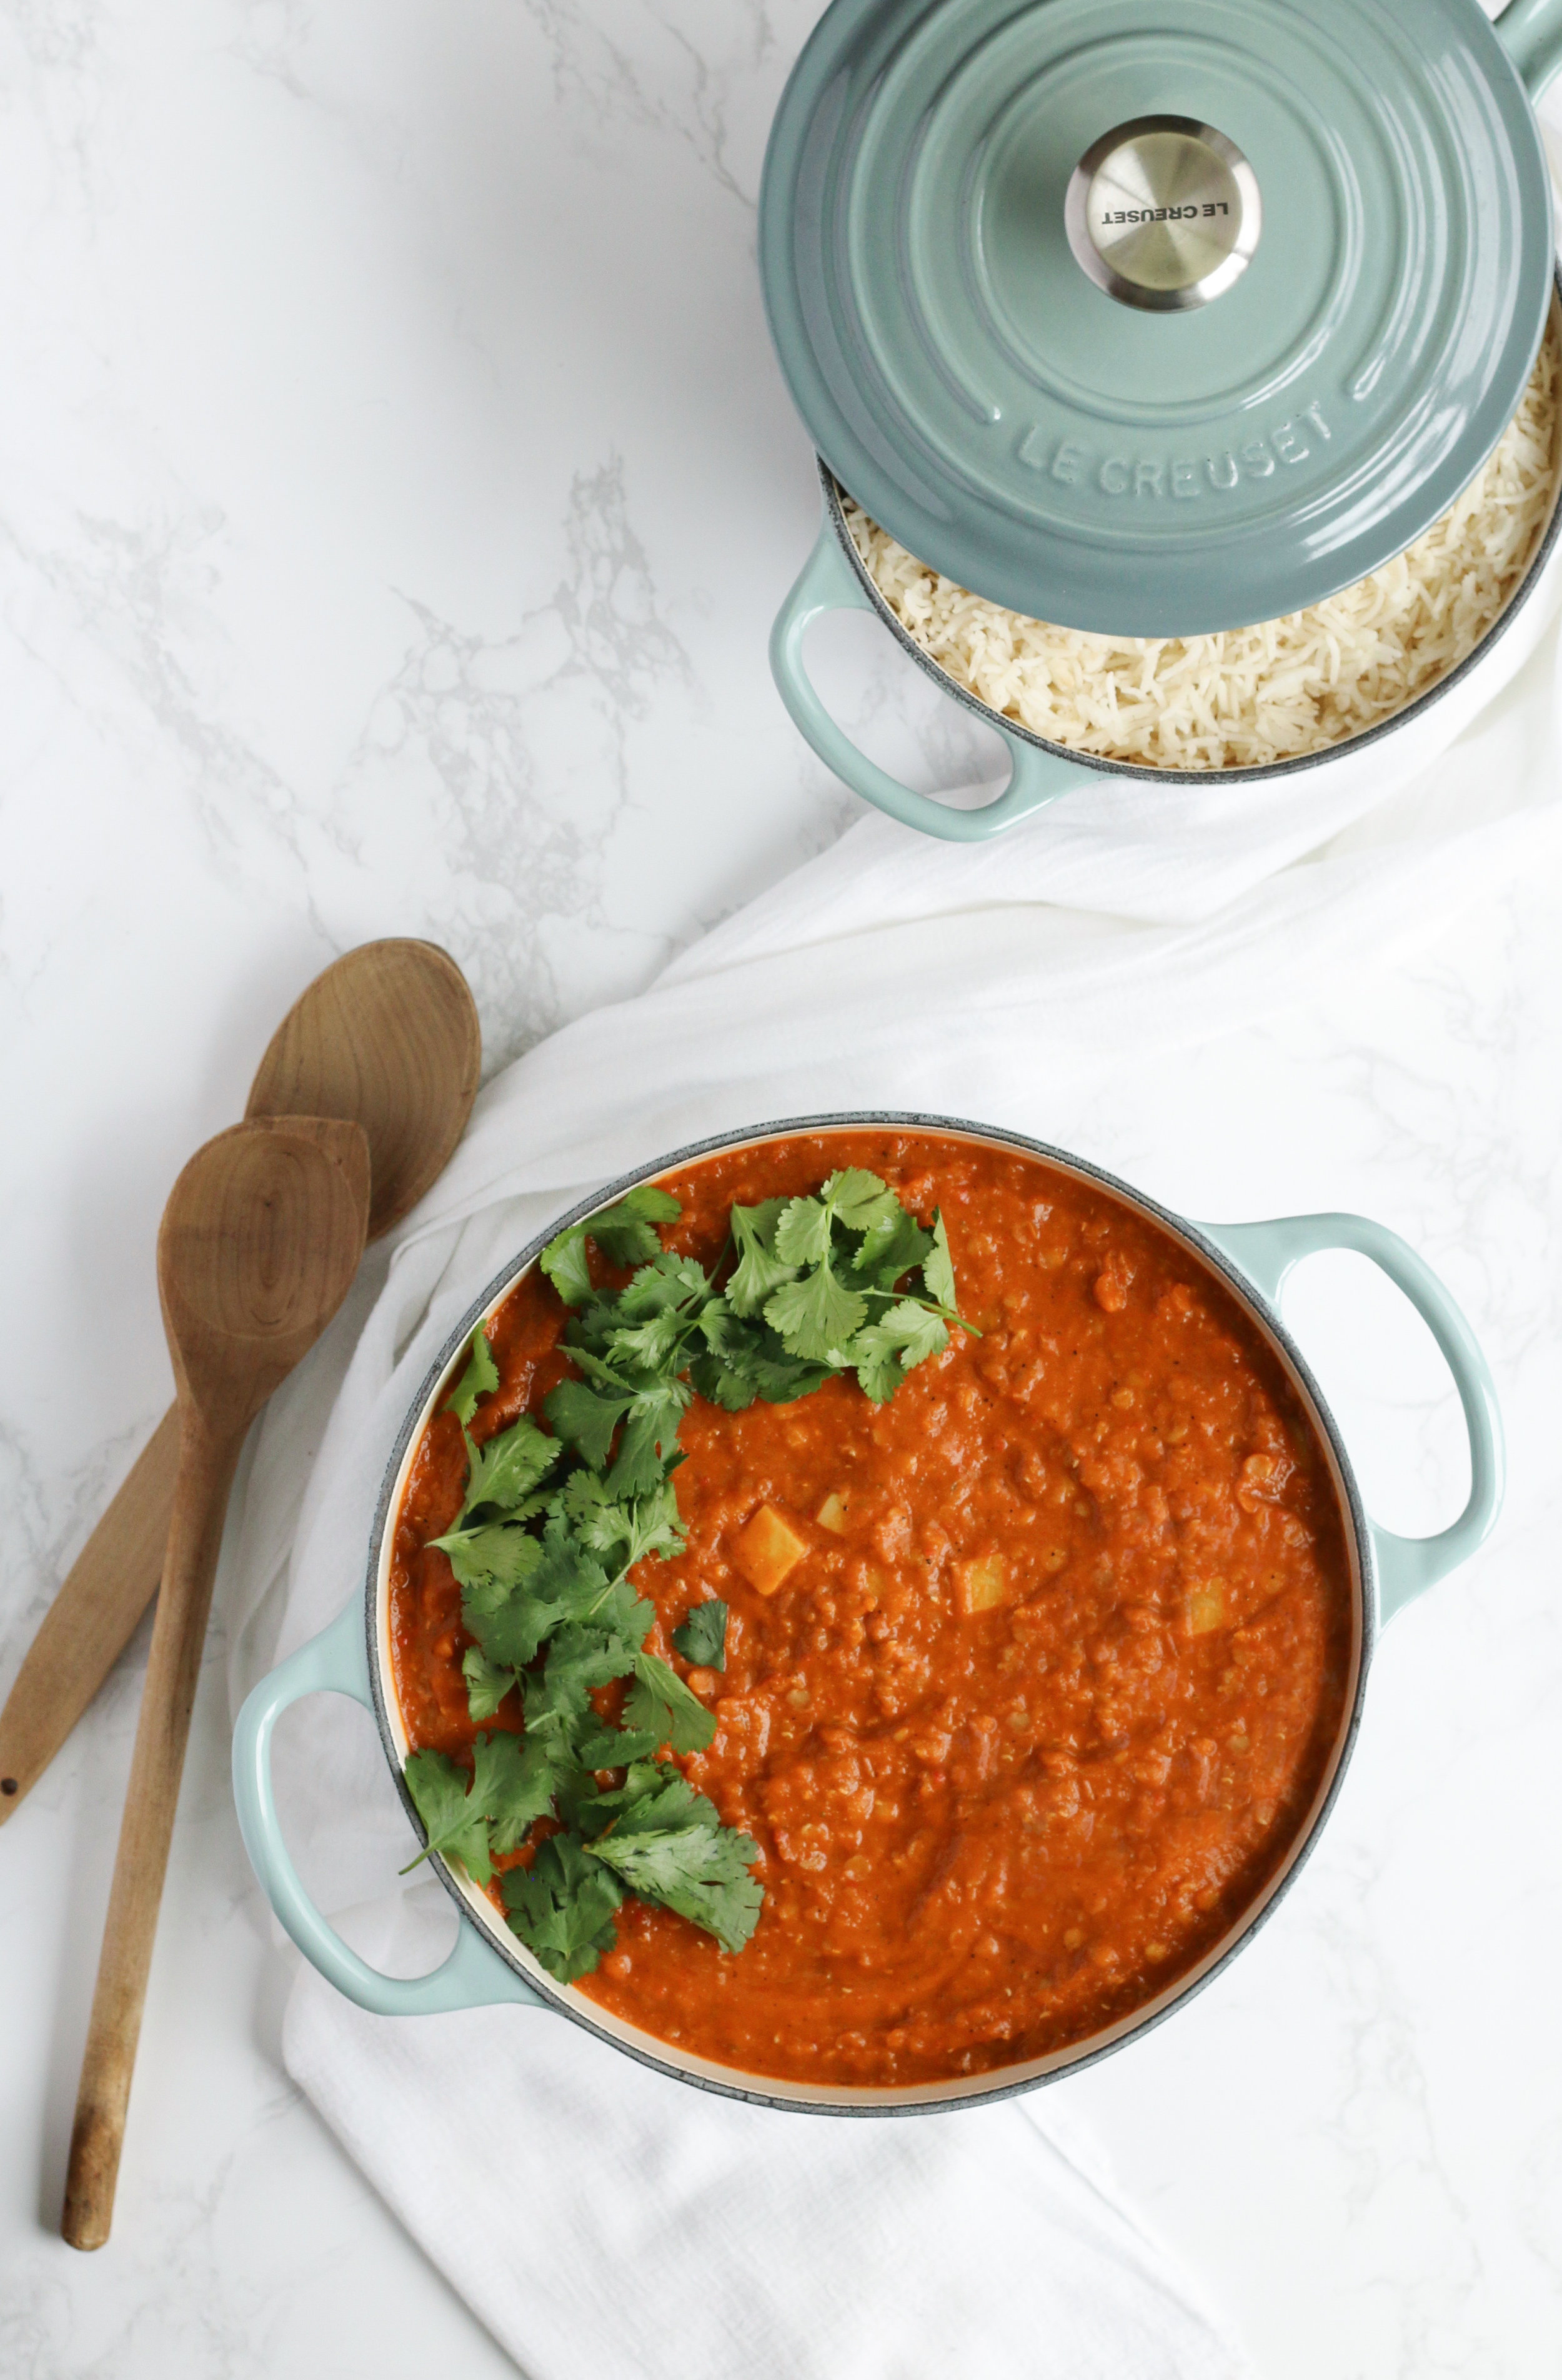 Creamy Vegan Red Dal made with lentils, coconut milk, and spices galore so it's packed with plant-based protein and healthy fats.